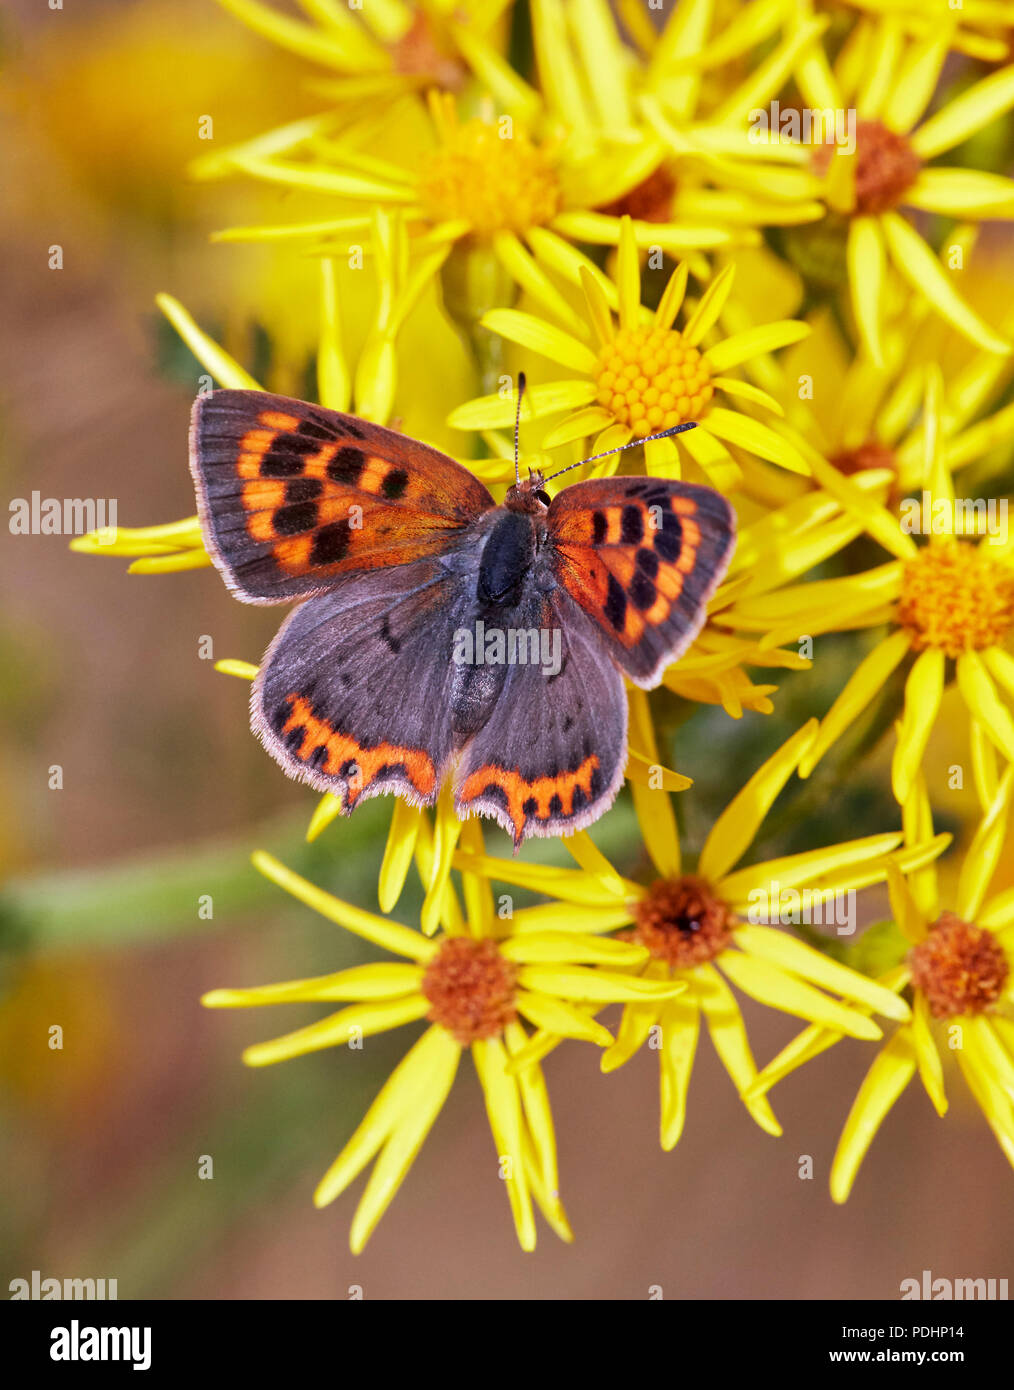 Small Copper aberration extensa nectaring on ragwort. Hurst Meadows, East Molesey, Surrey, England. - Stock Image